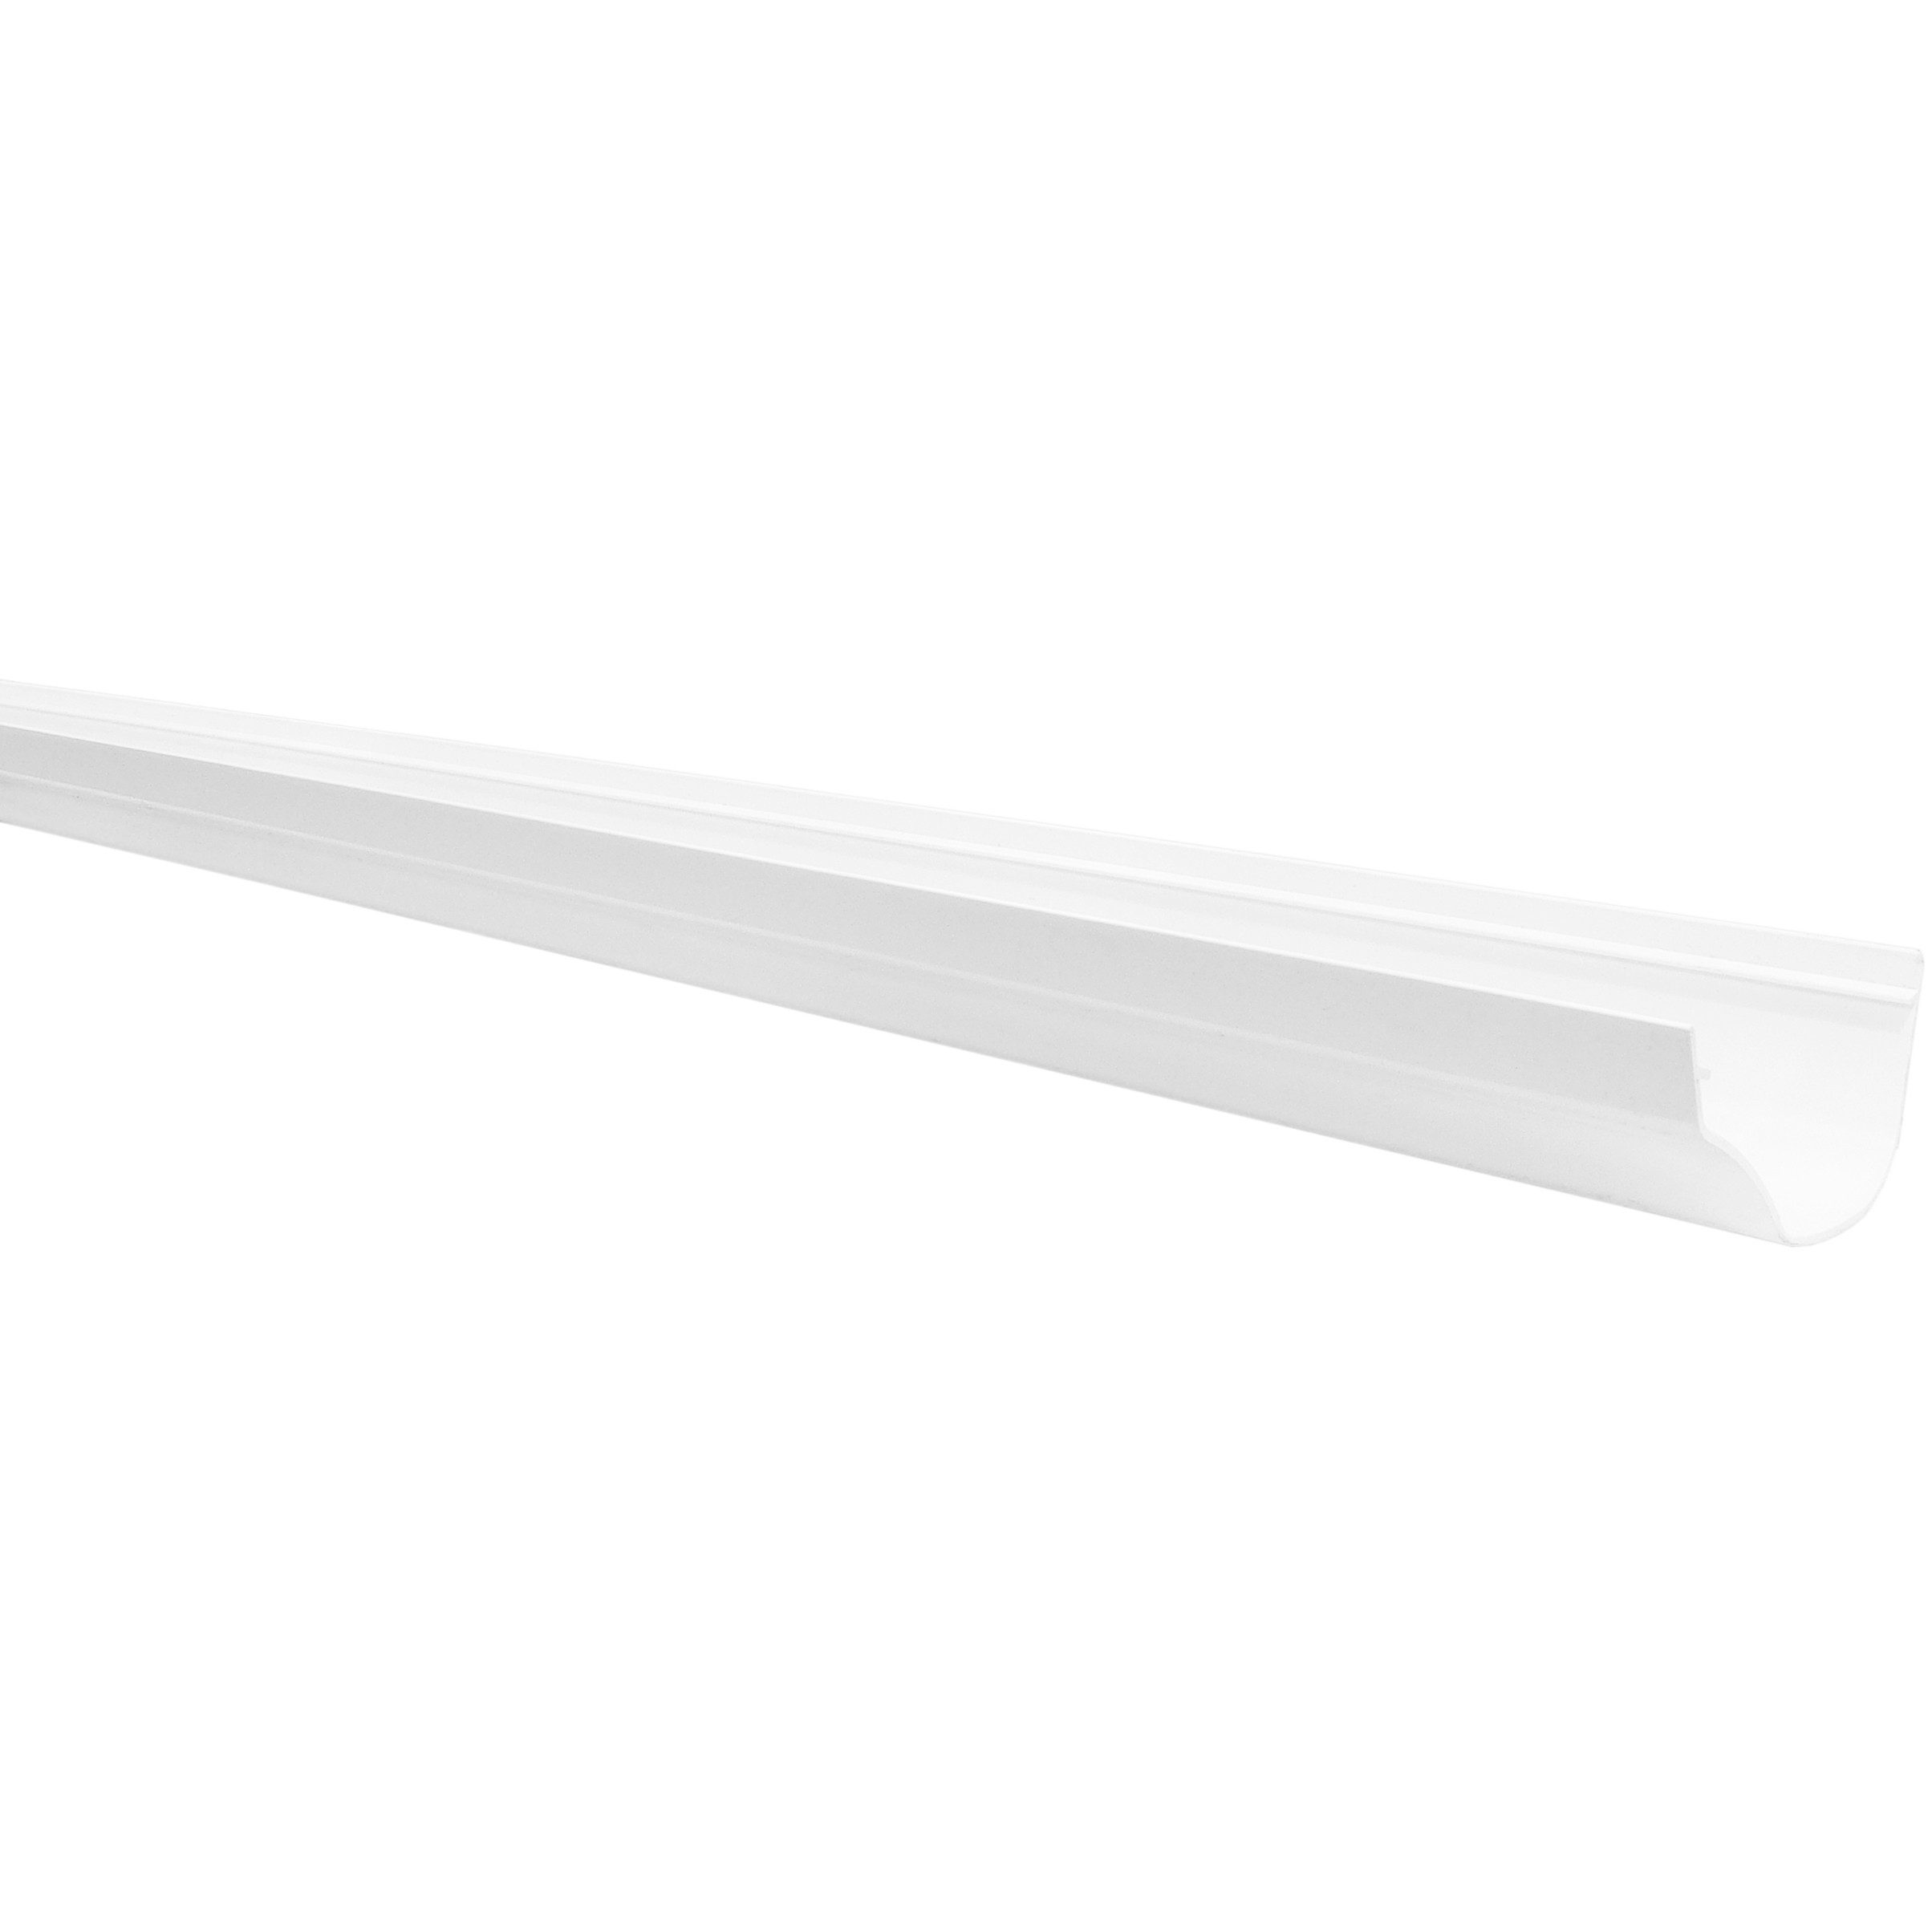 Polypipe 130mm Ogee Extra Capacity Gutter - White, 2 metre